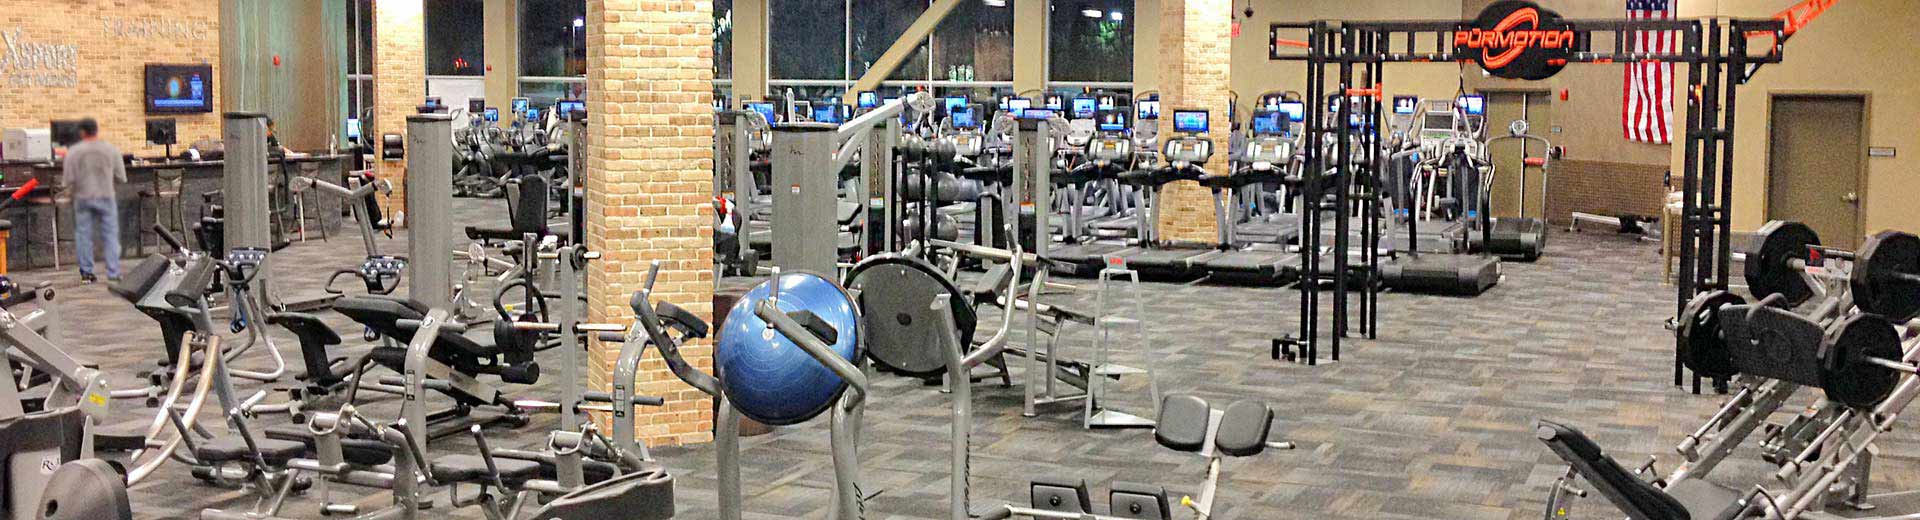 arlington heights north il gym amenities | xsport fitness